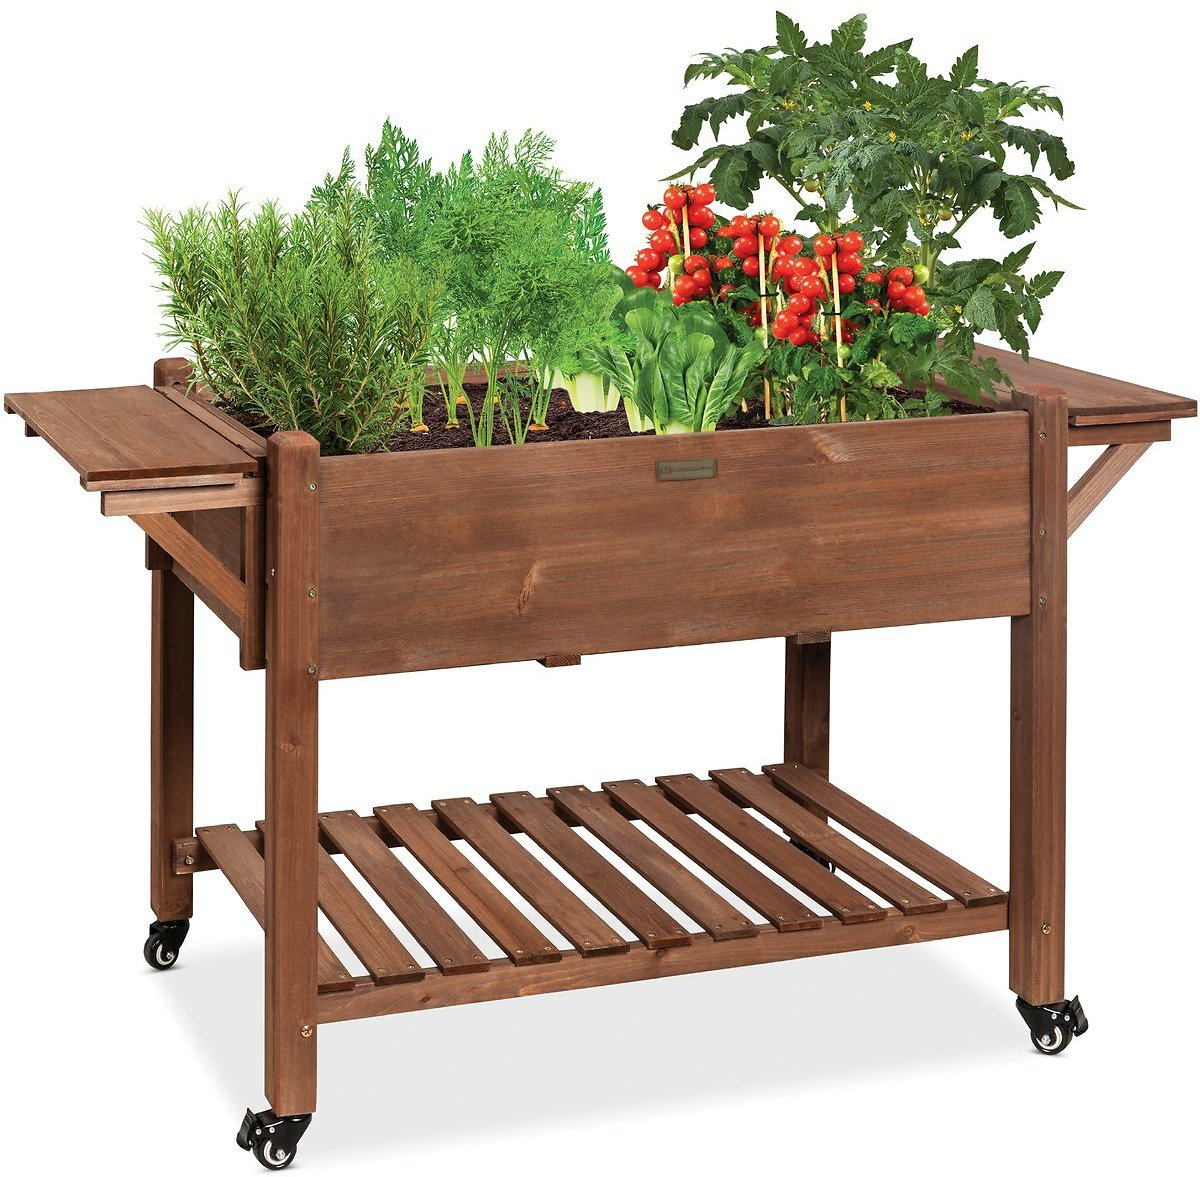 Mobile Raised Garden Bed Elevated Wood Garden Planter Stand - 57x20x33in